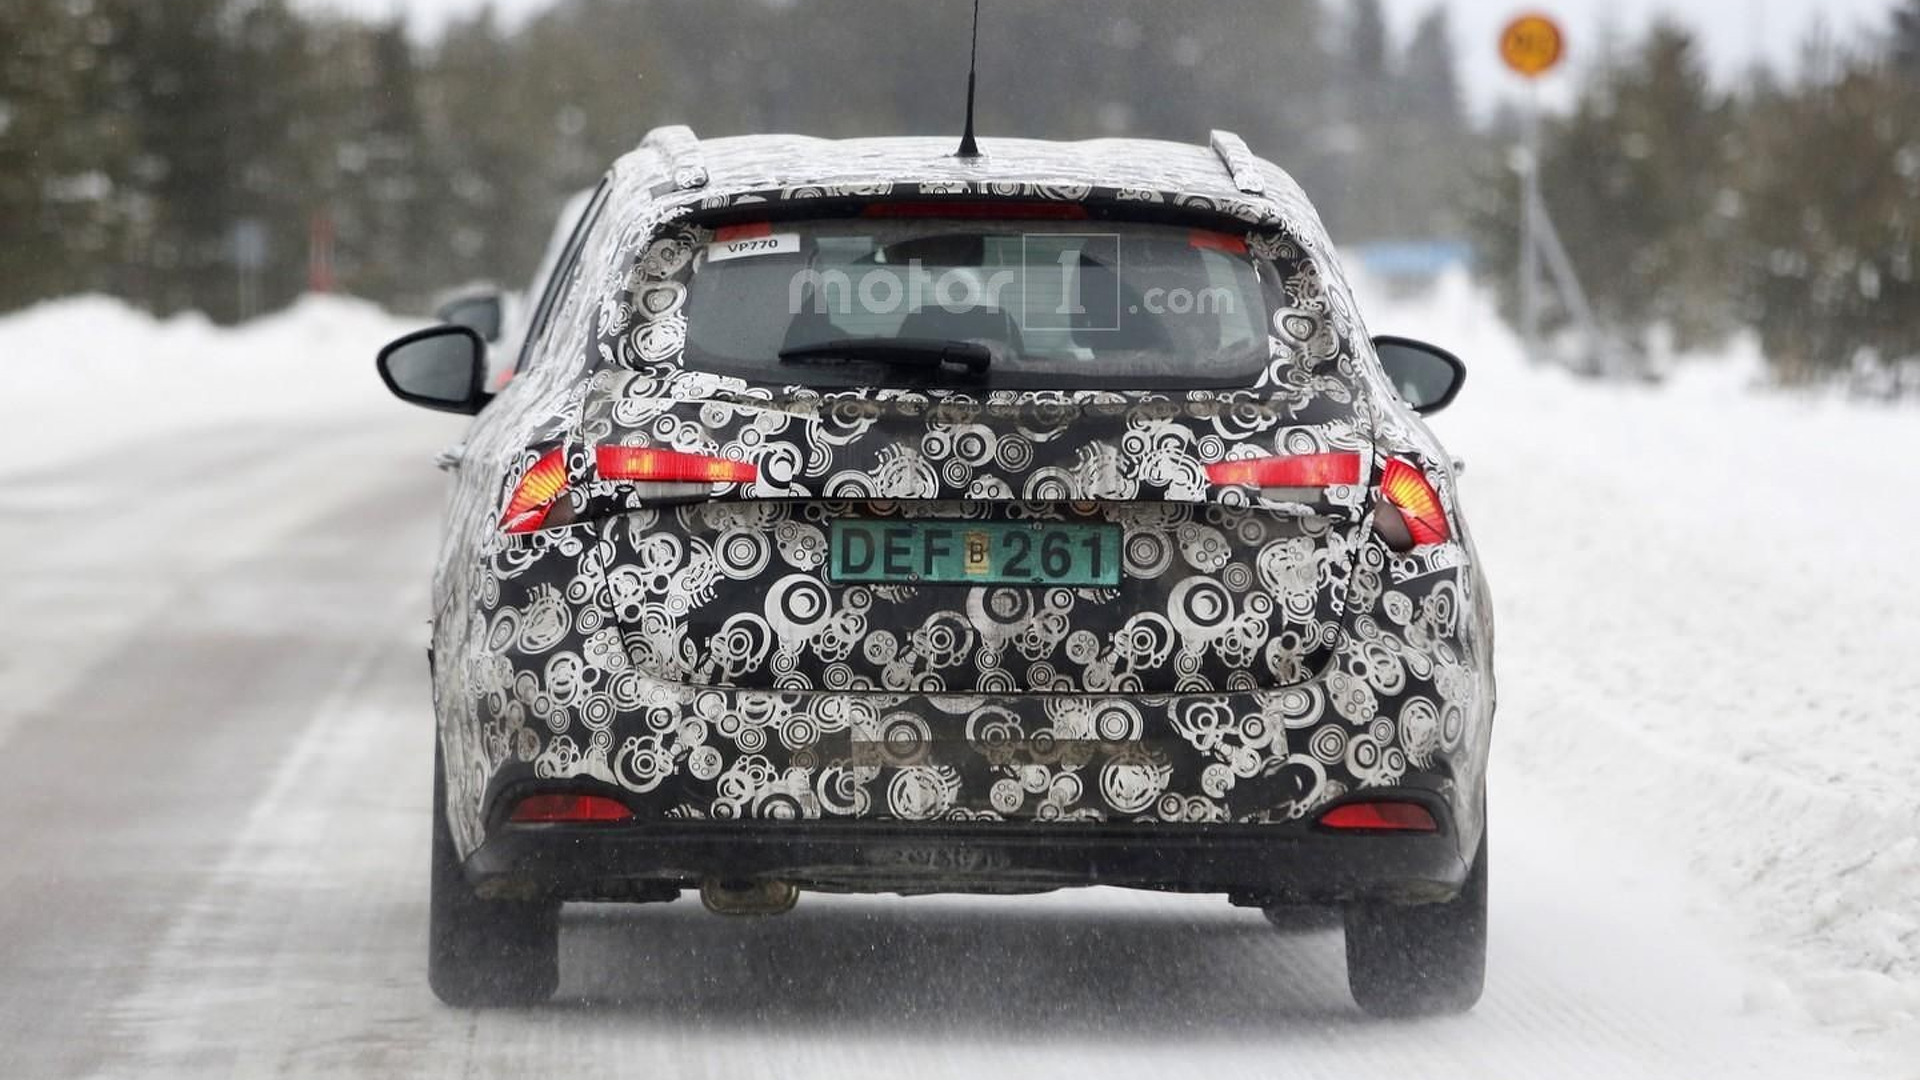 Fiat Tipo estate spy shots reveal taillights